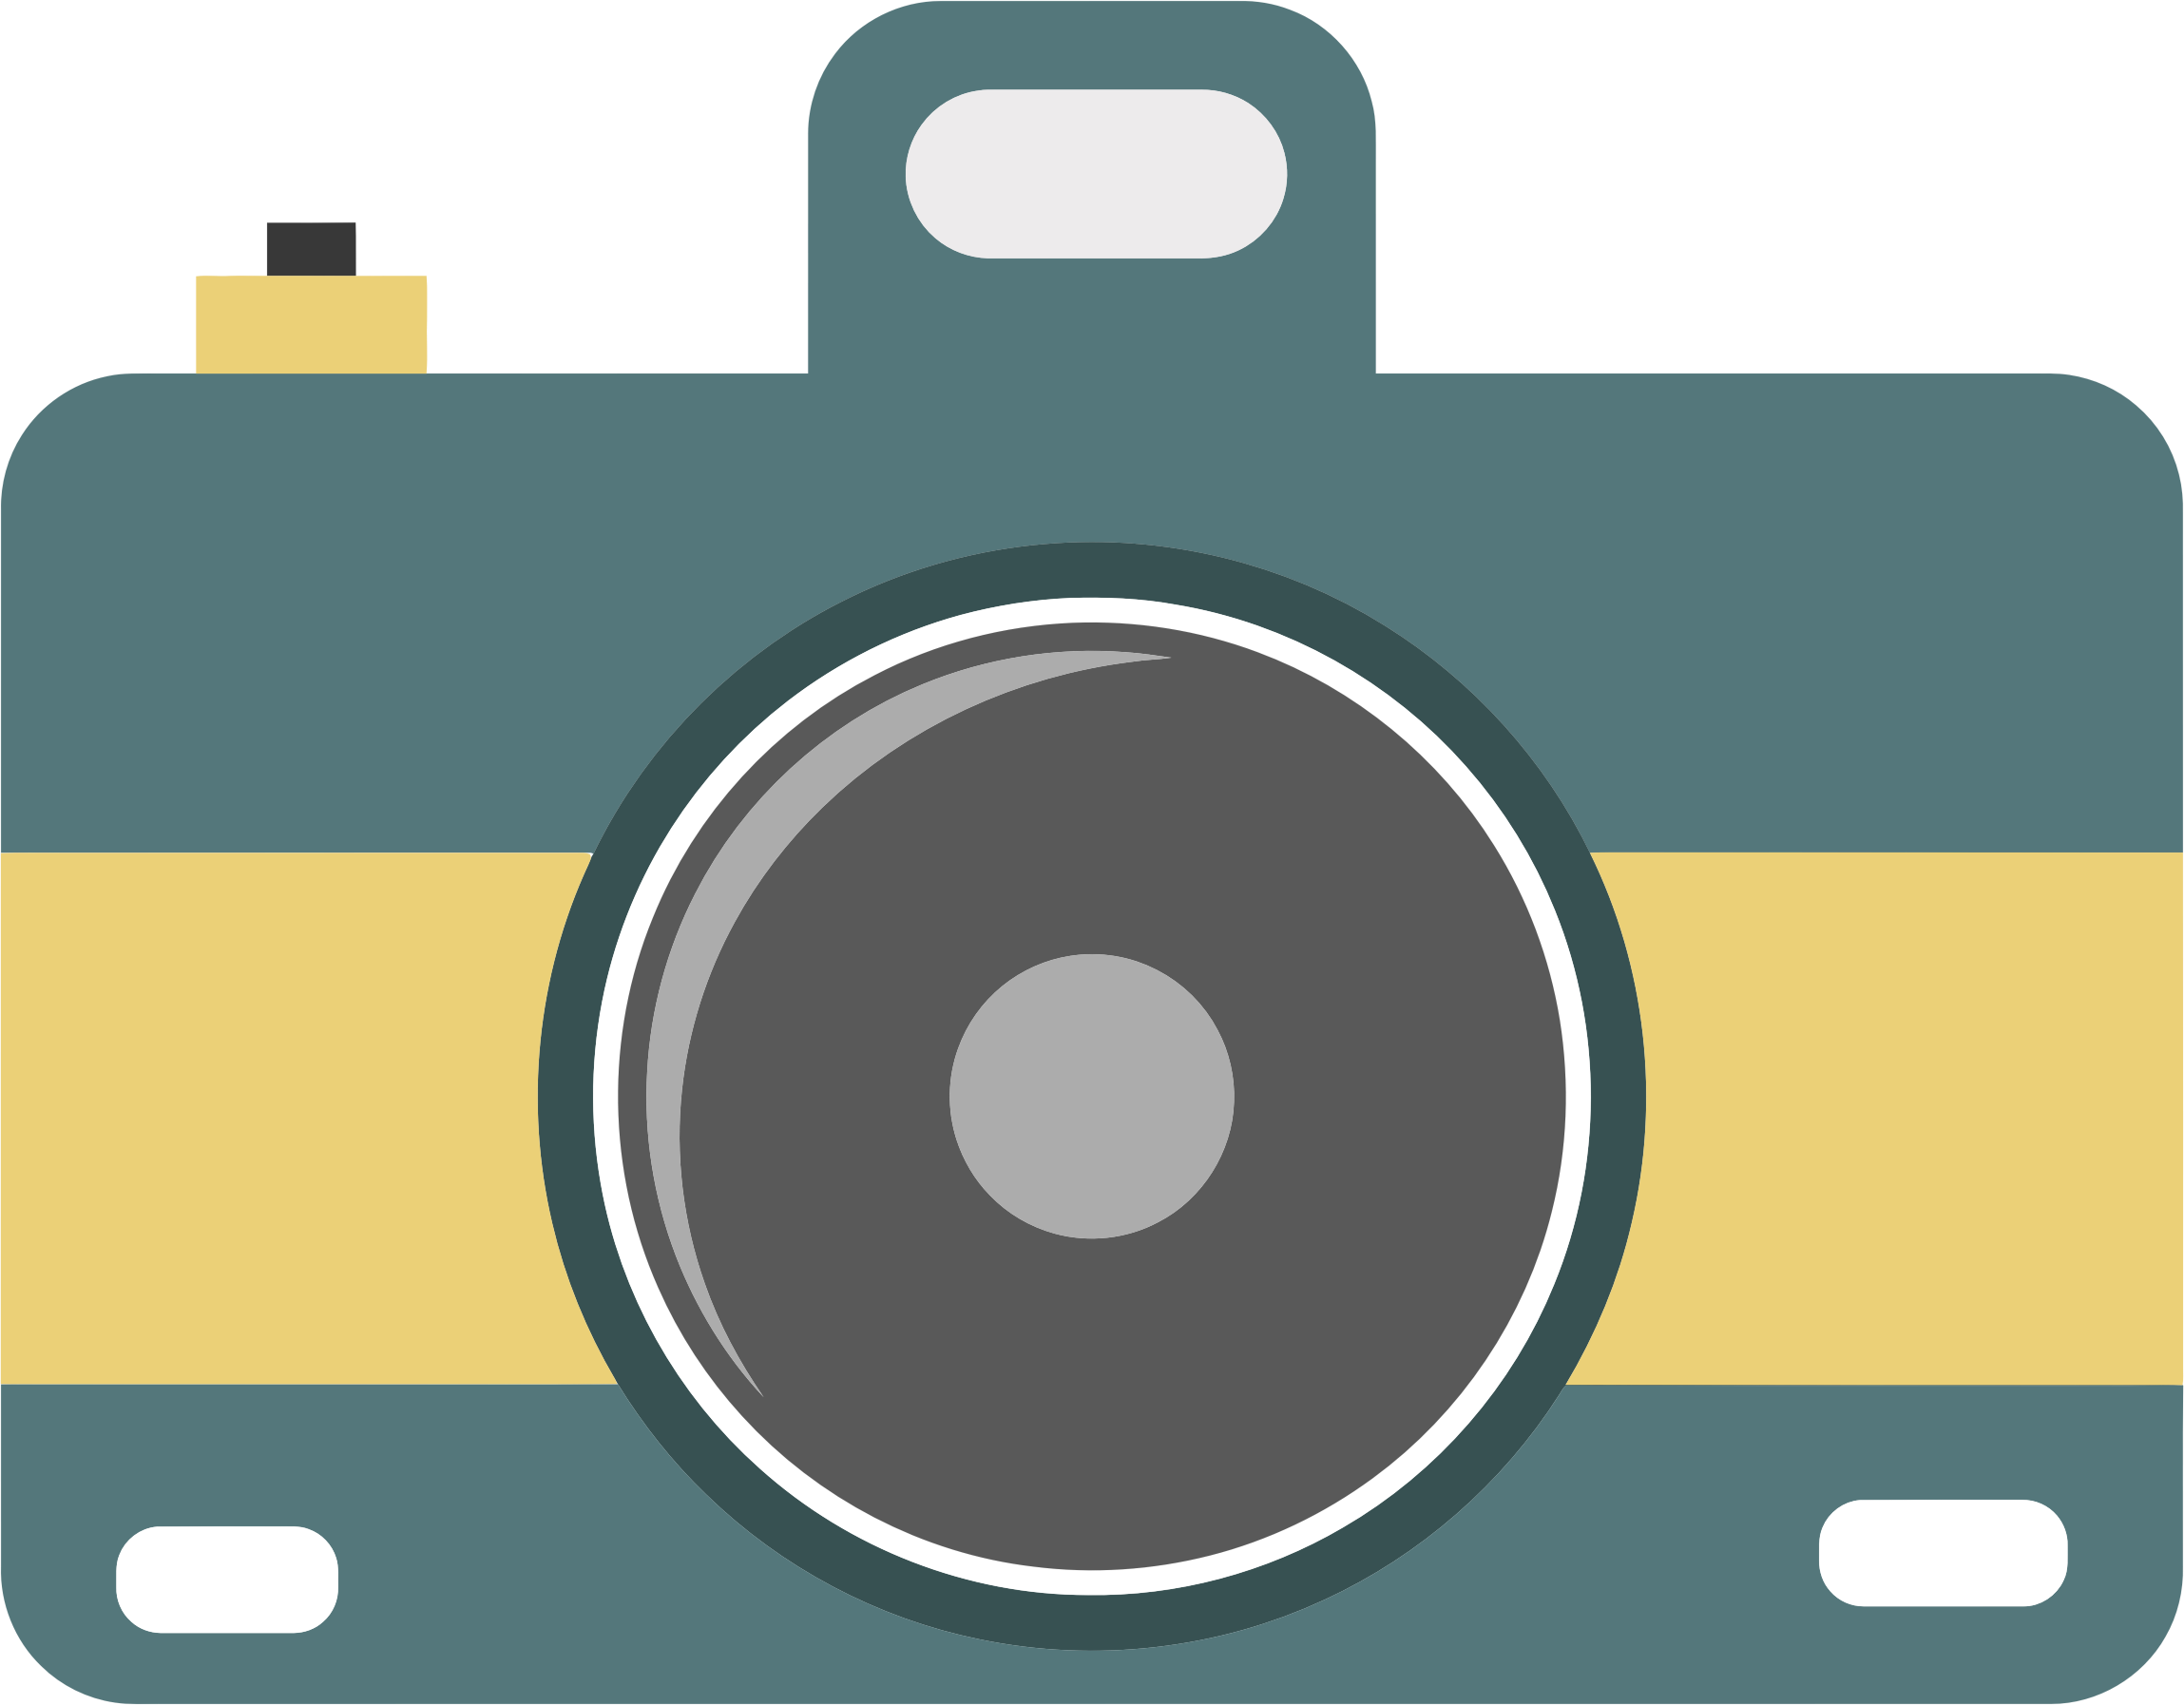 Clipart - Camera Icon